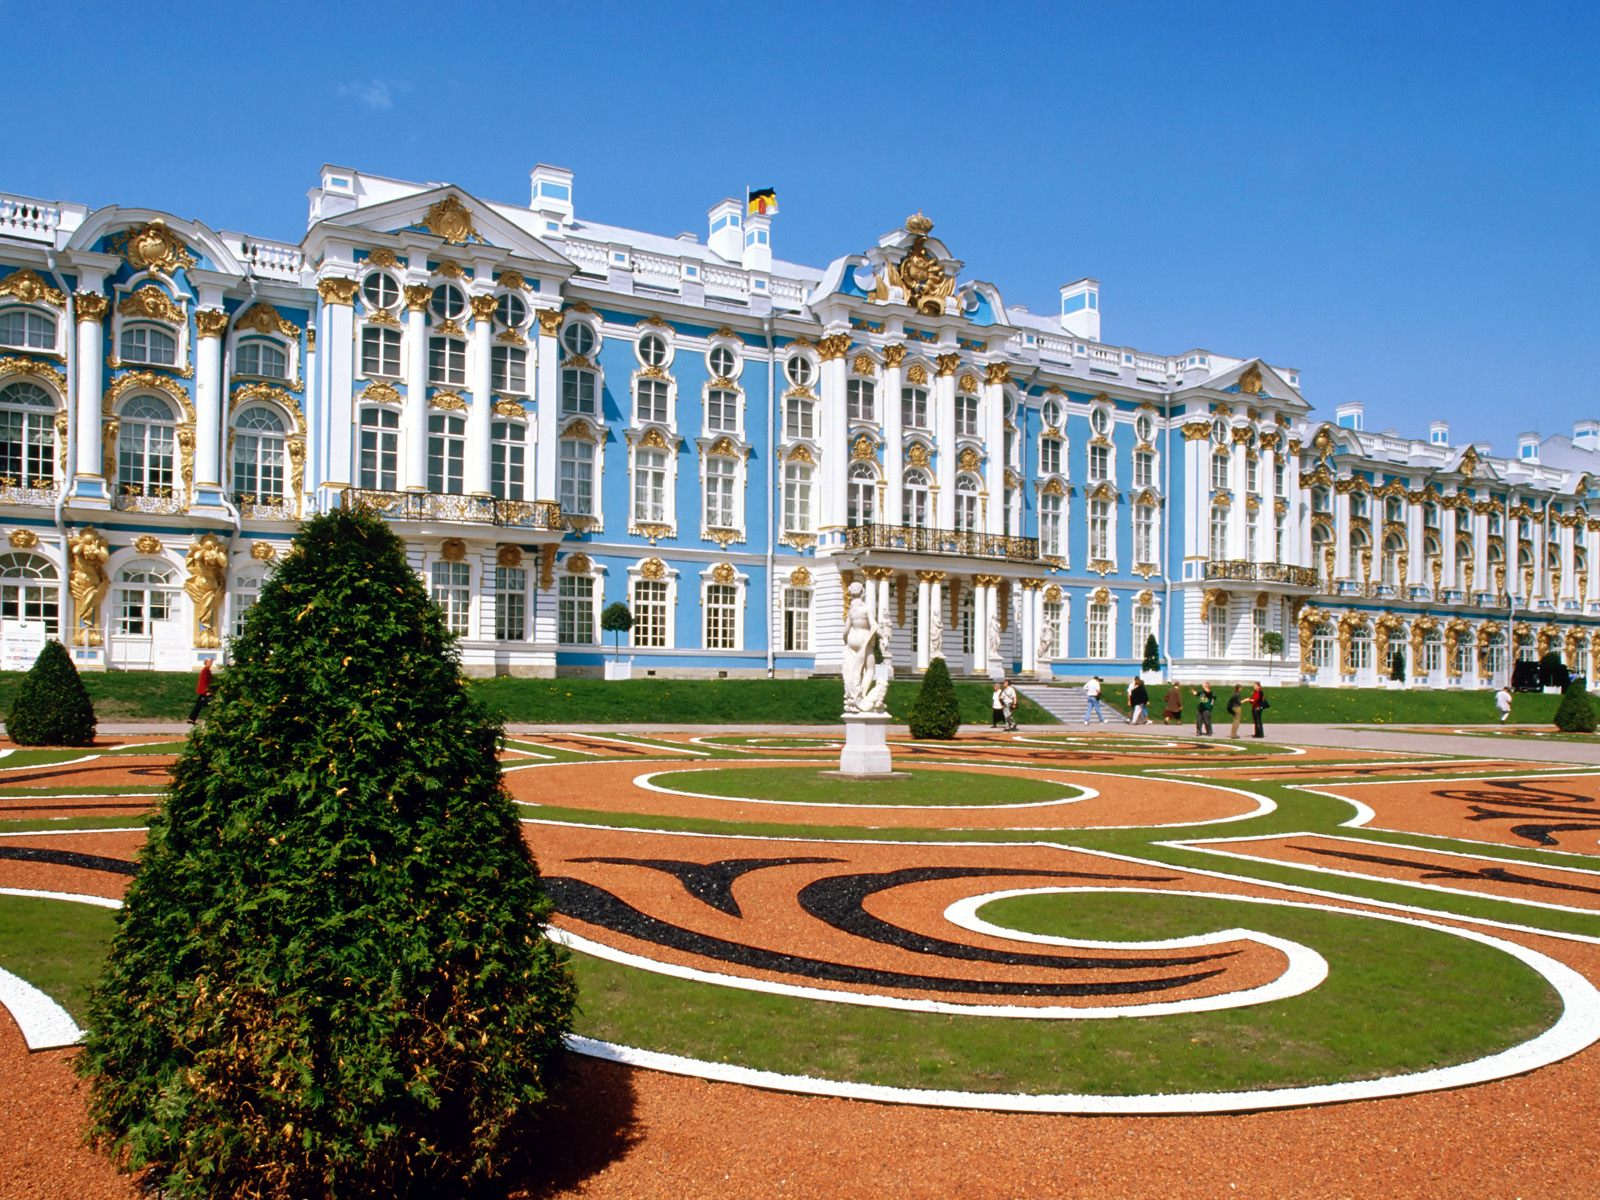 http://1.bp.blogspot.com/-CbB24E9mbAQ/UKT2GCMj2ZI/AAAAAAAAASI/LHOR-ngZh9Q/s1600/hd-wallpaper-with-catherine+palace-in-st.+petersburg-in-russia.jpg